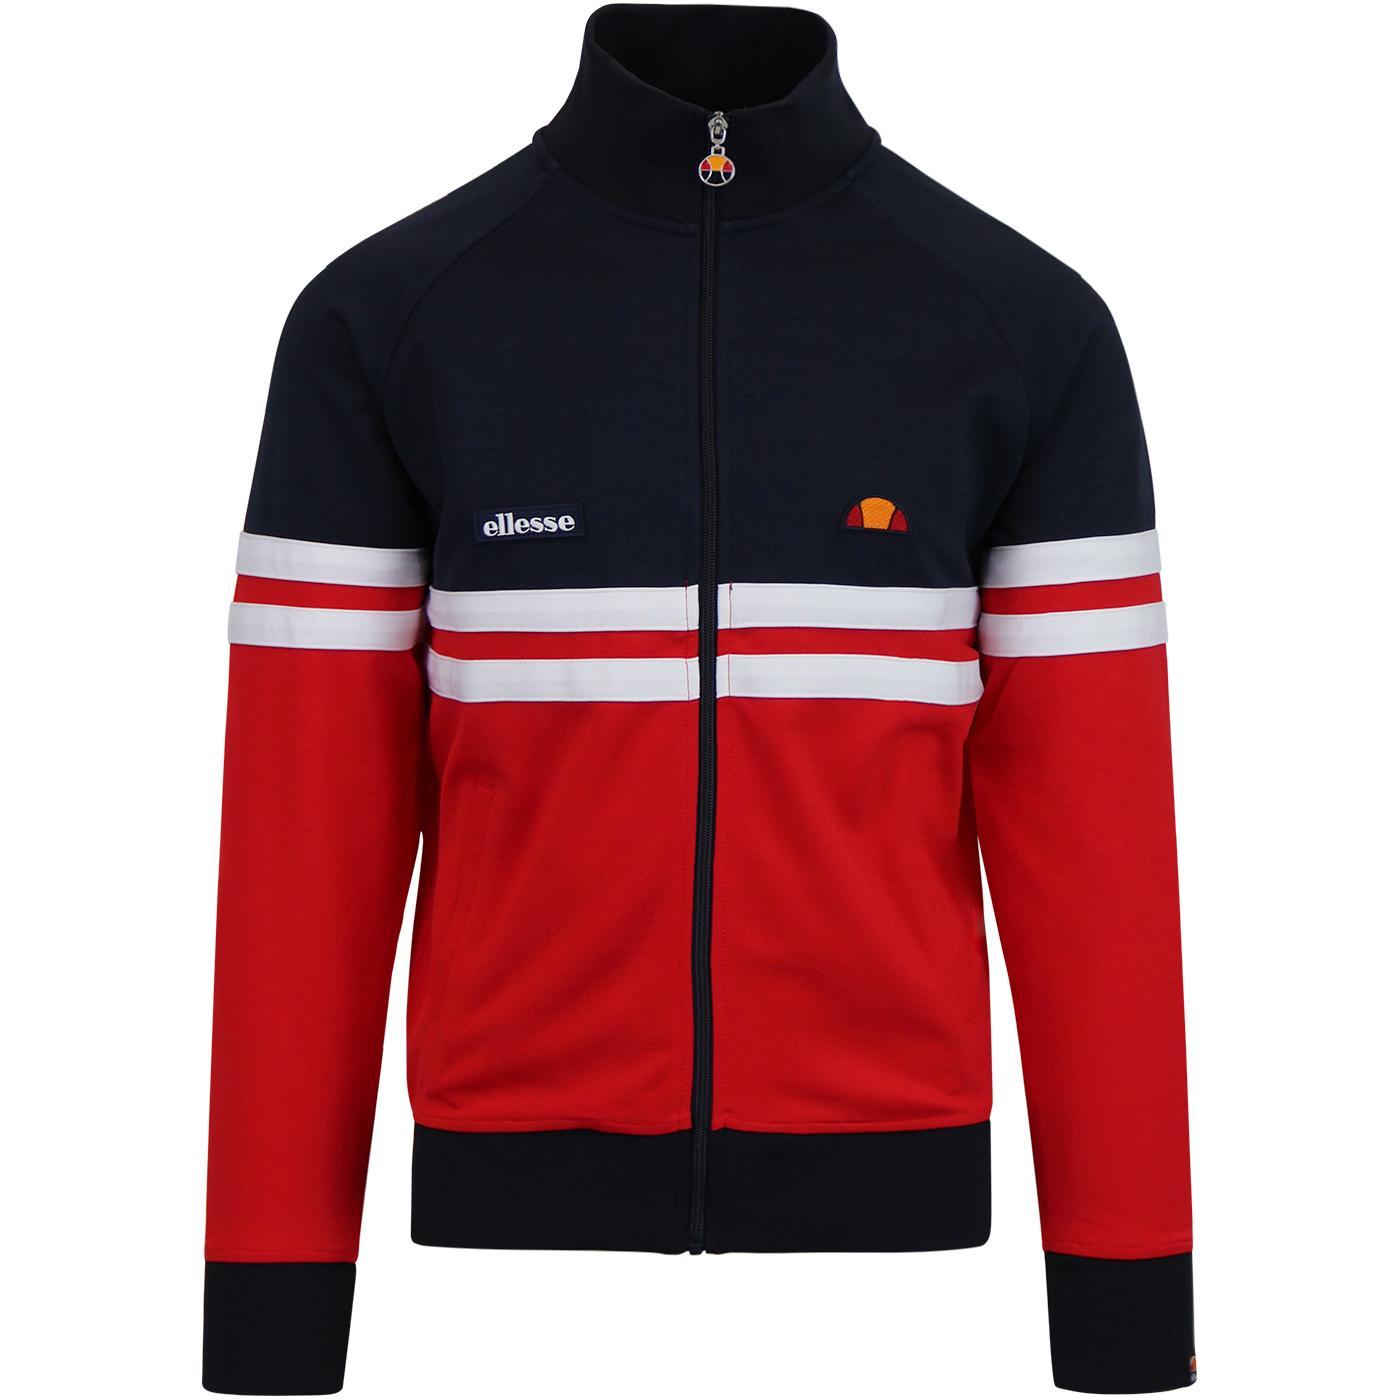 Rimini ELLESSE Men's Retro 80s Casuals Track Top R